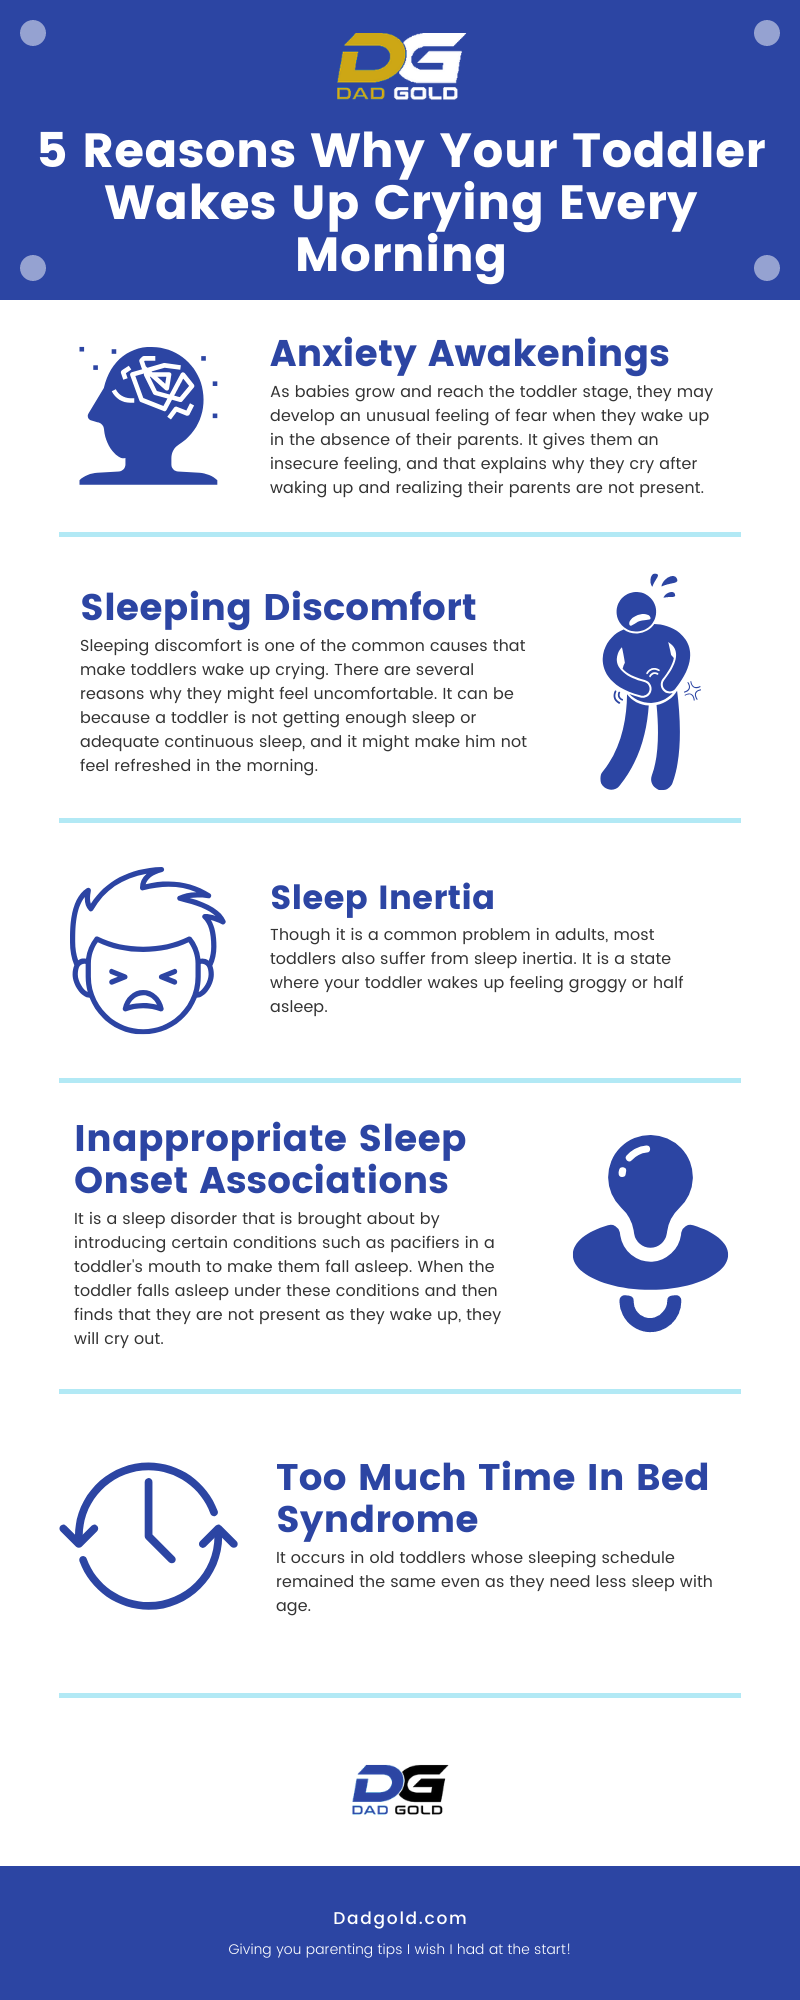 5 Reasons Why Your Toddler Wakes Up Crying Every Morning Infographic